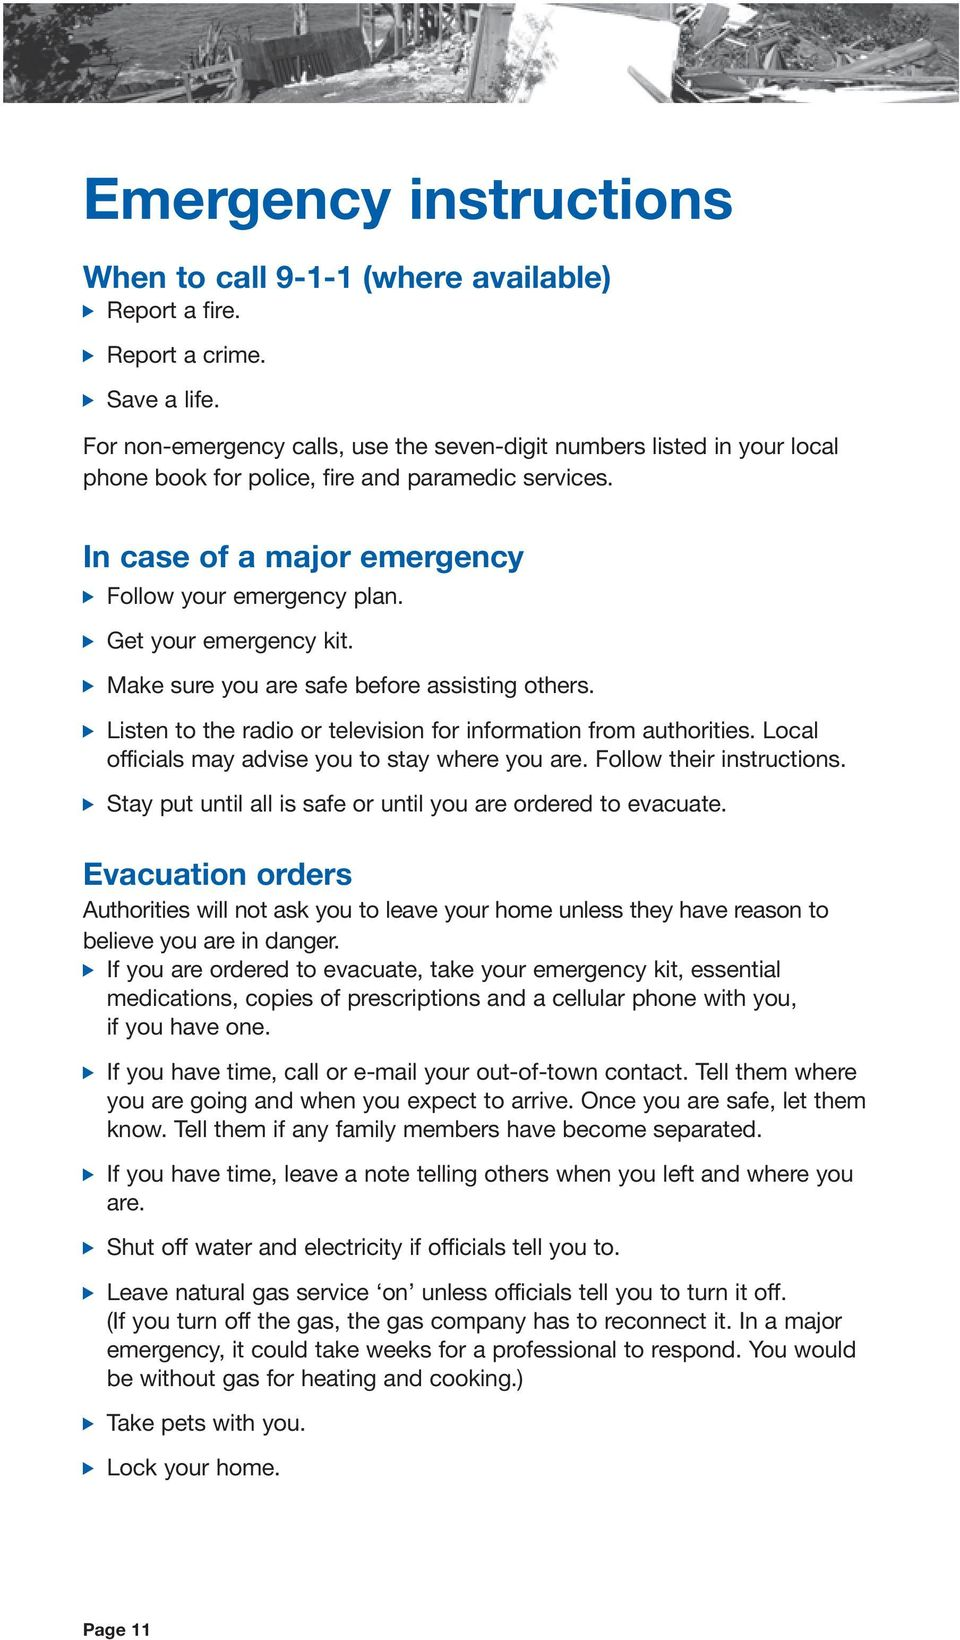 v Get your emergency kit. v Make sure you are safe before assisting others. v Listen to the radio or television for information from authorities. Local officials may advise you to stay where you are.